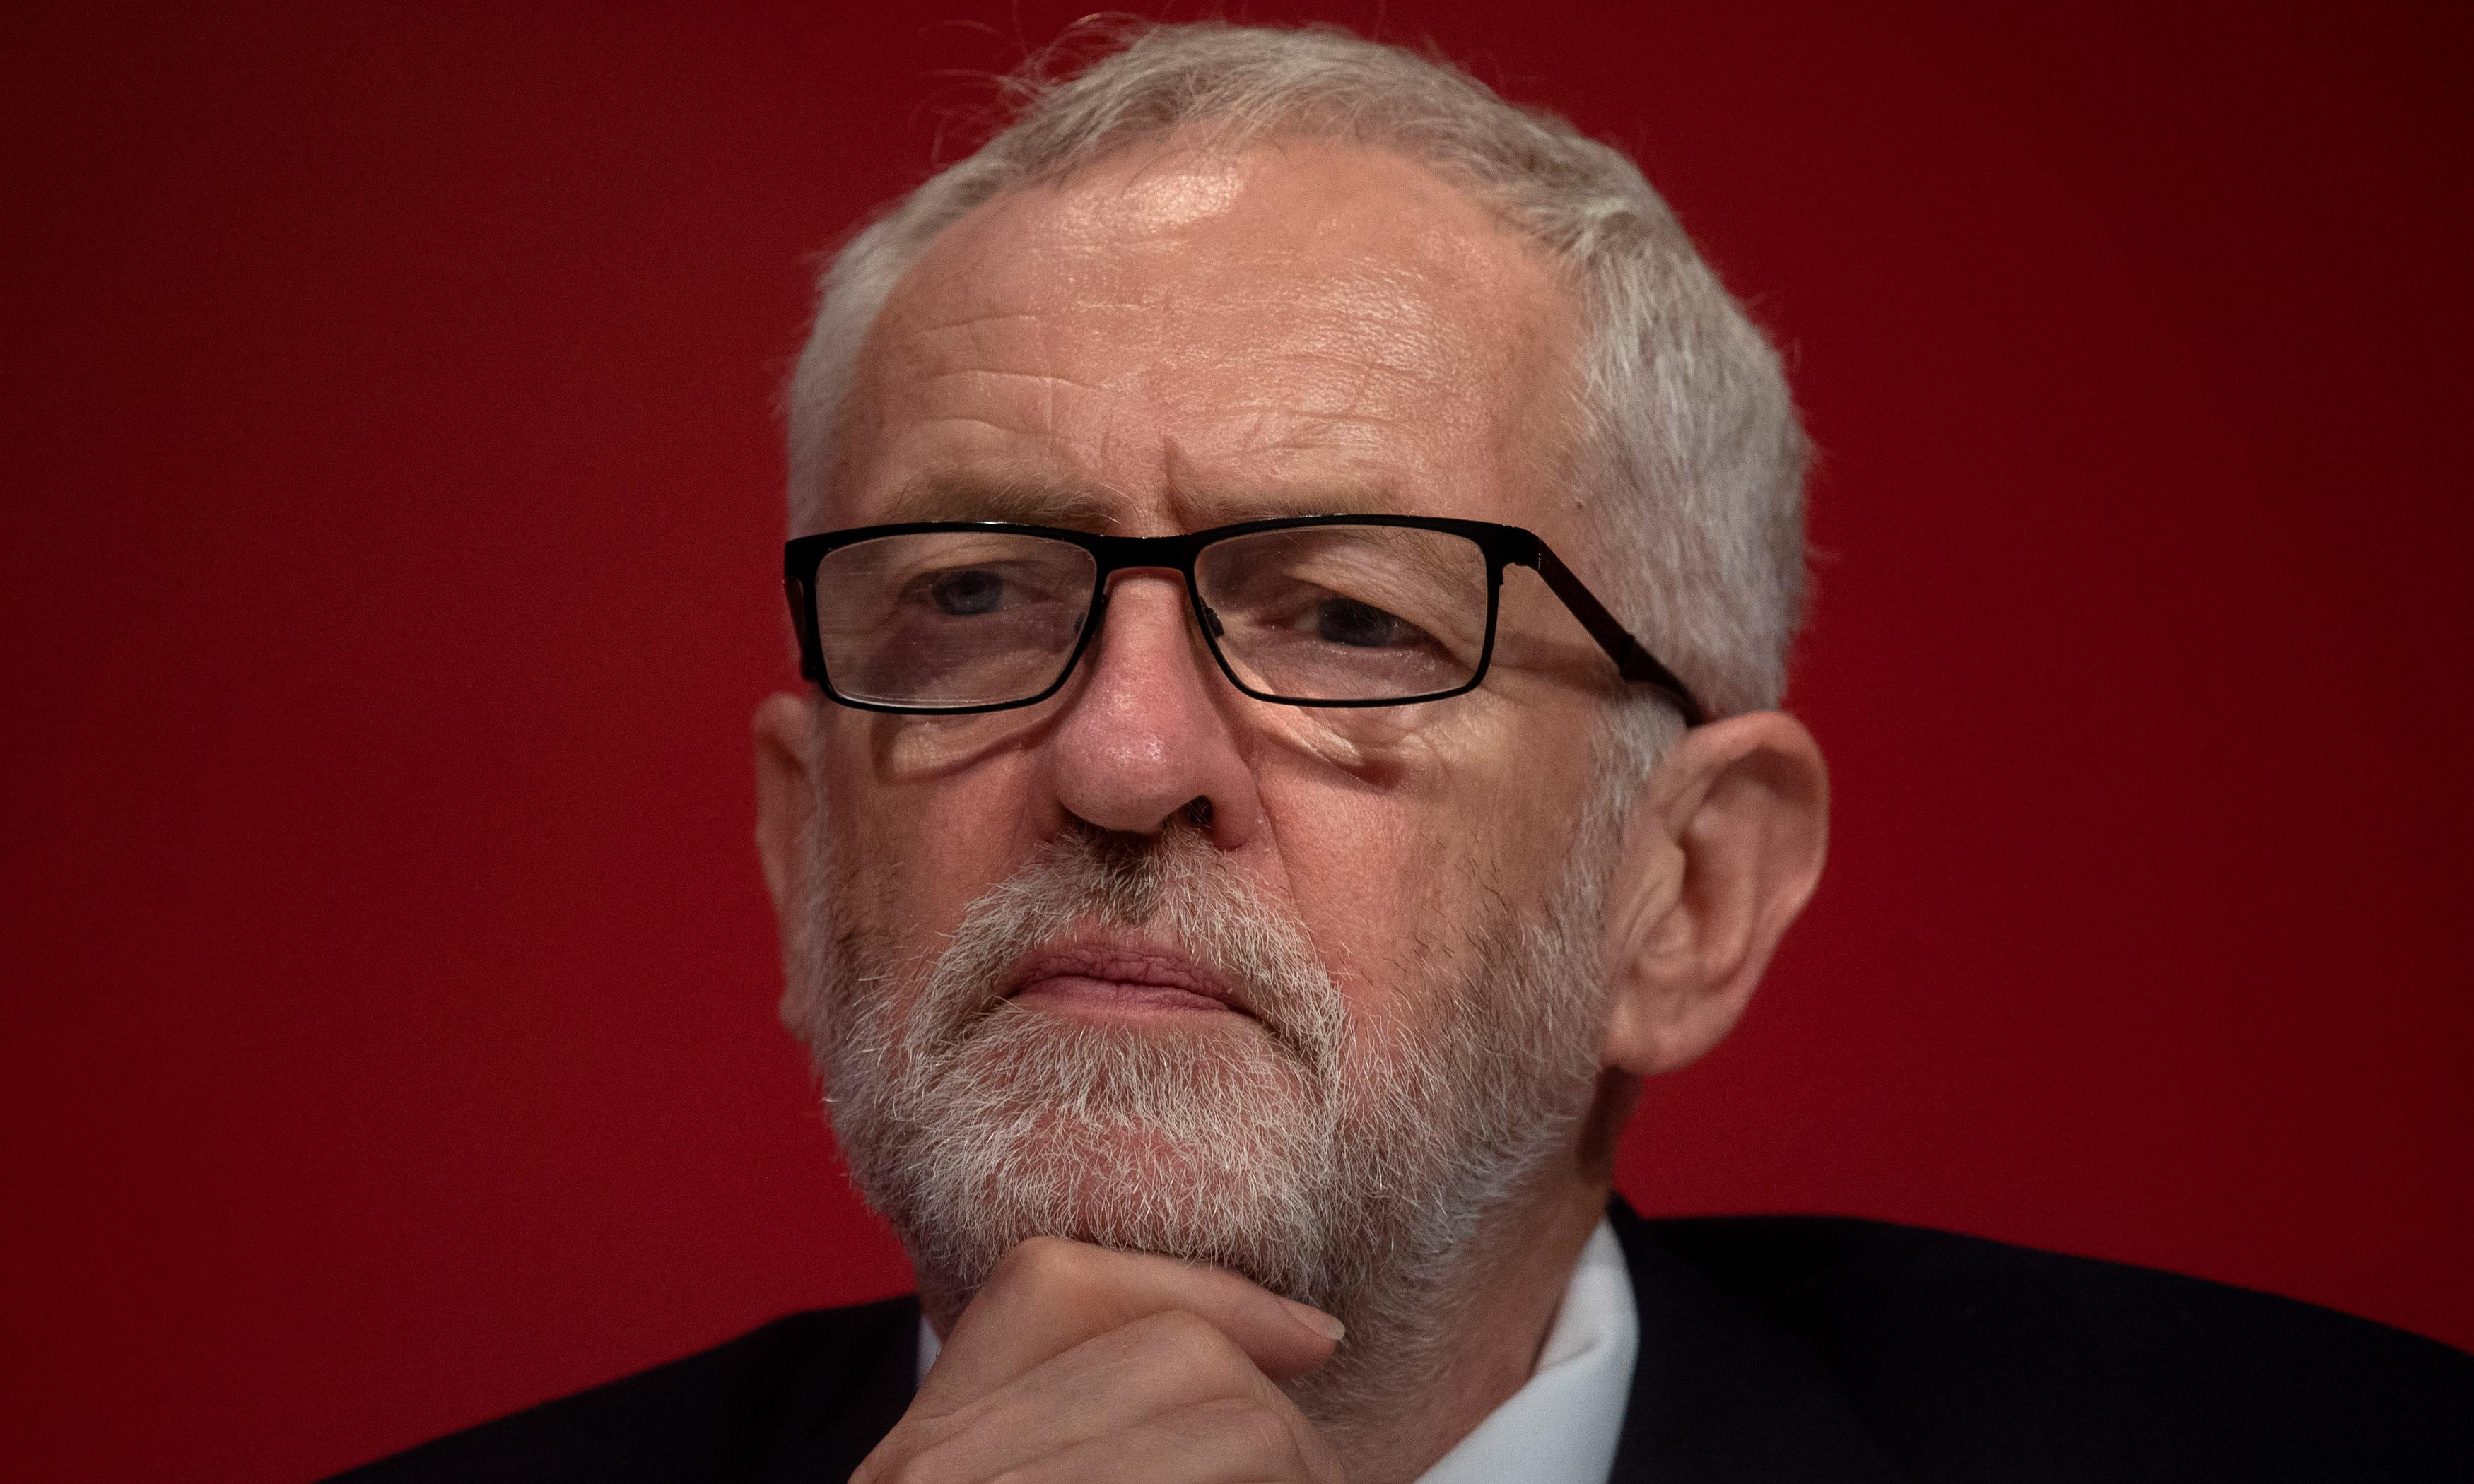 Corbyn on collision course with Labour members over Brexit